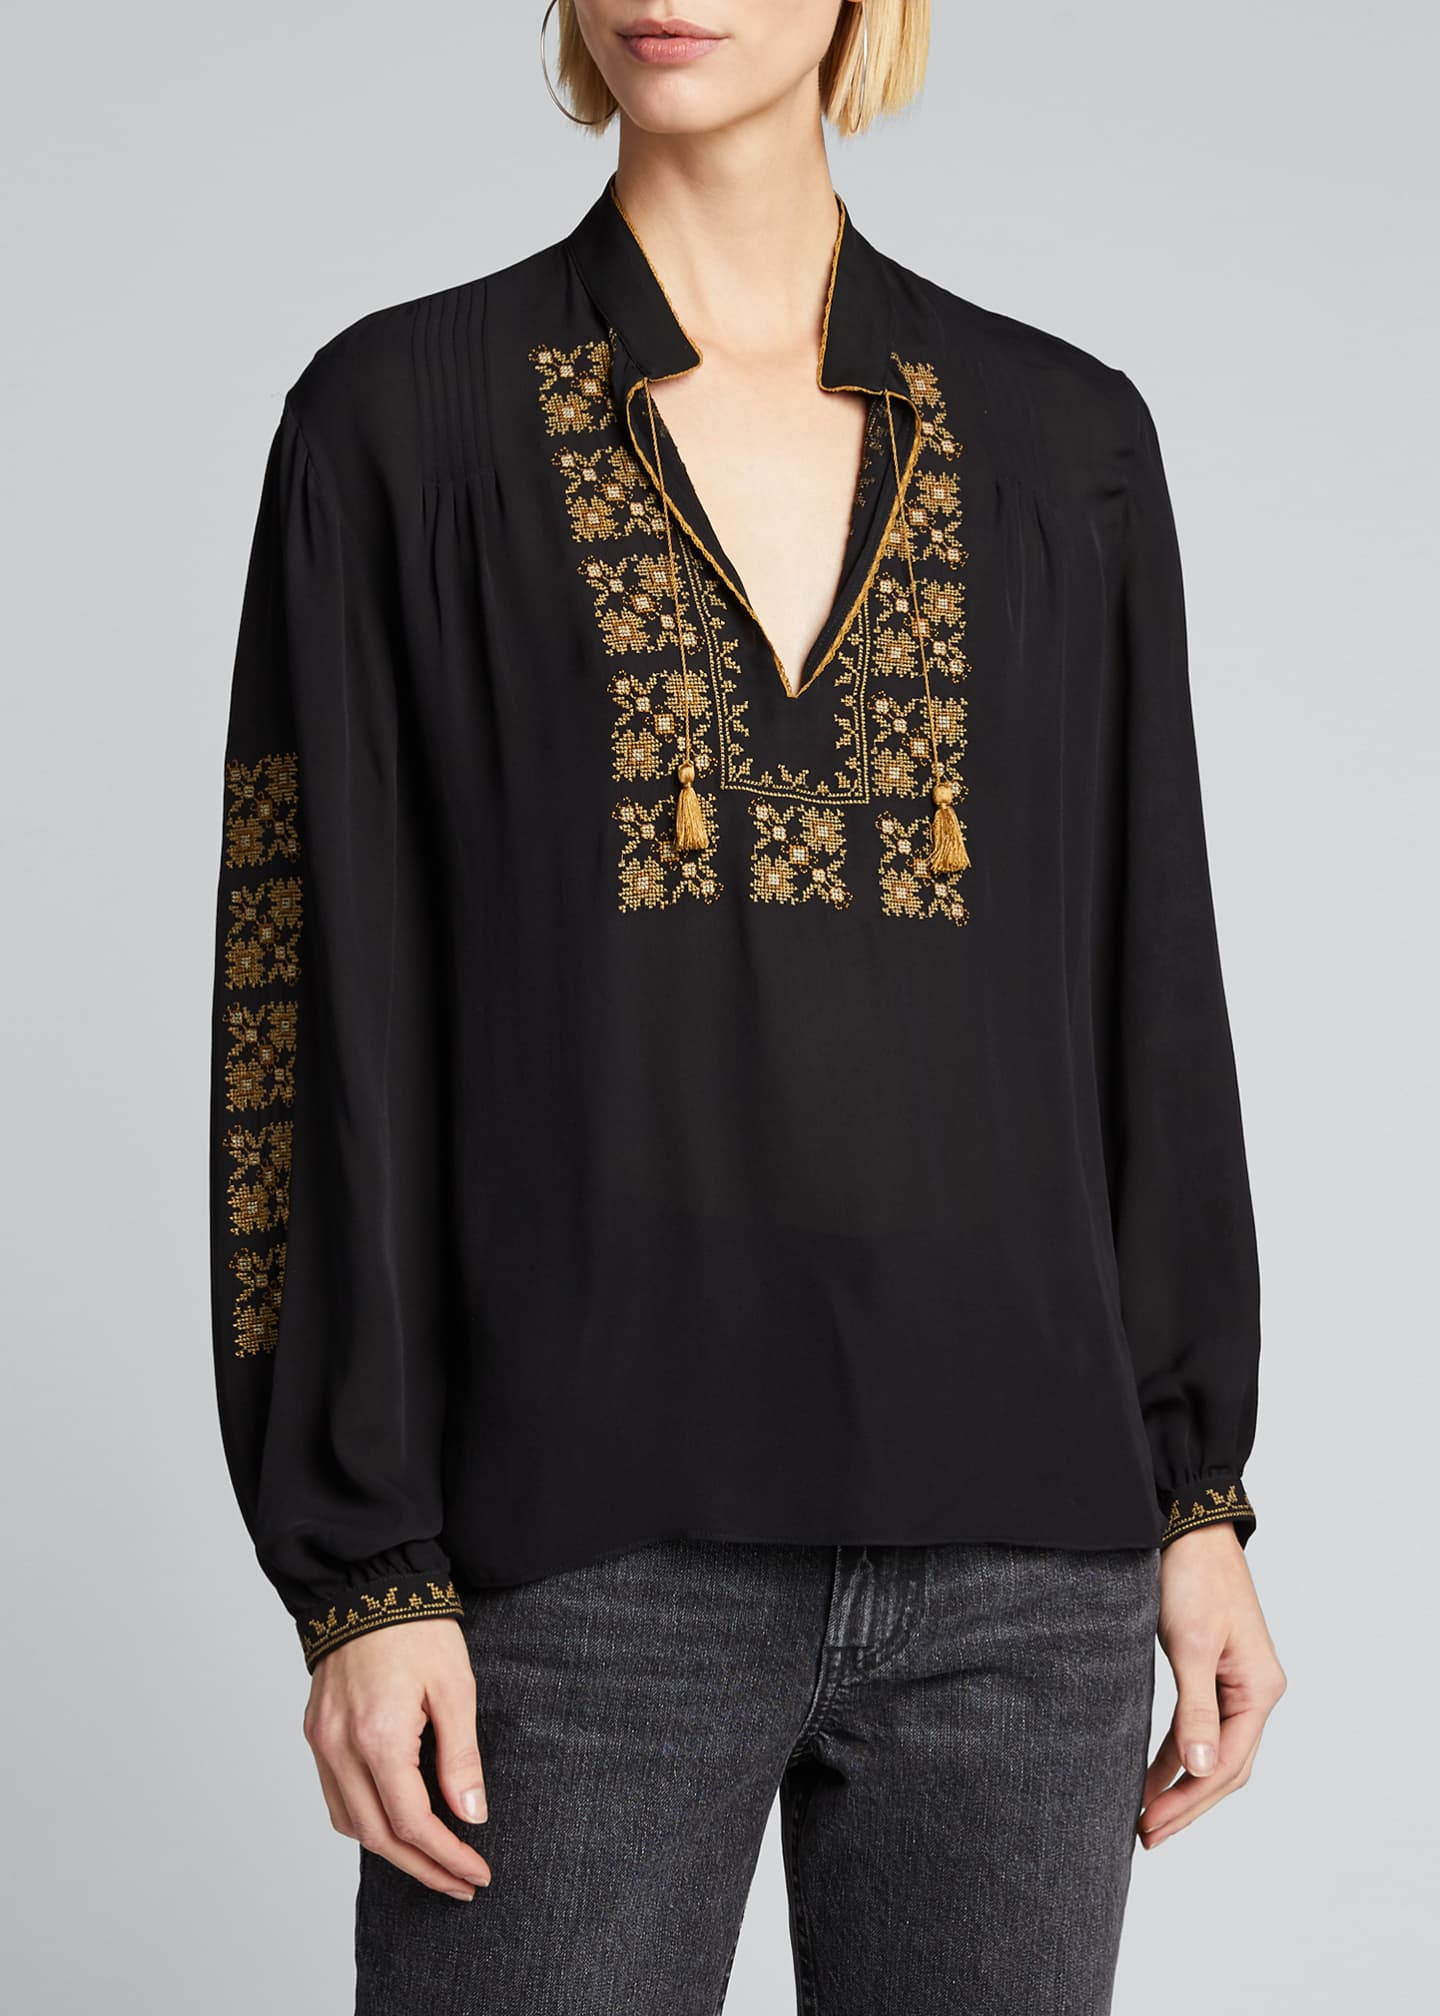 Image 3 of 5: Karina Palestinian Embroidered Top